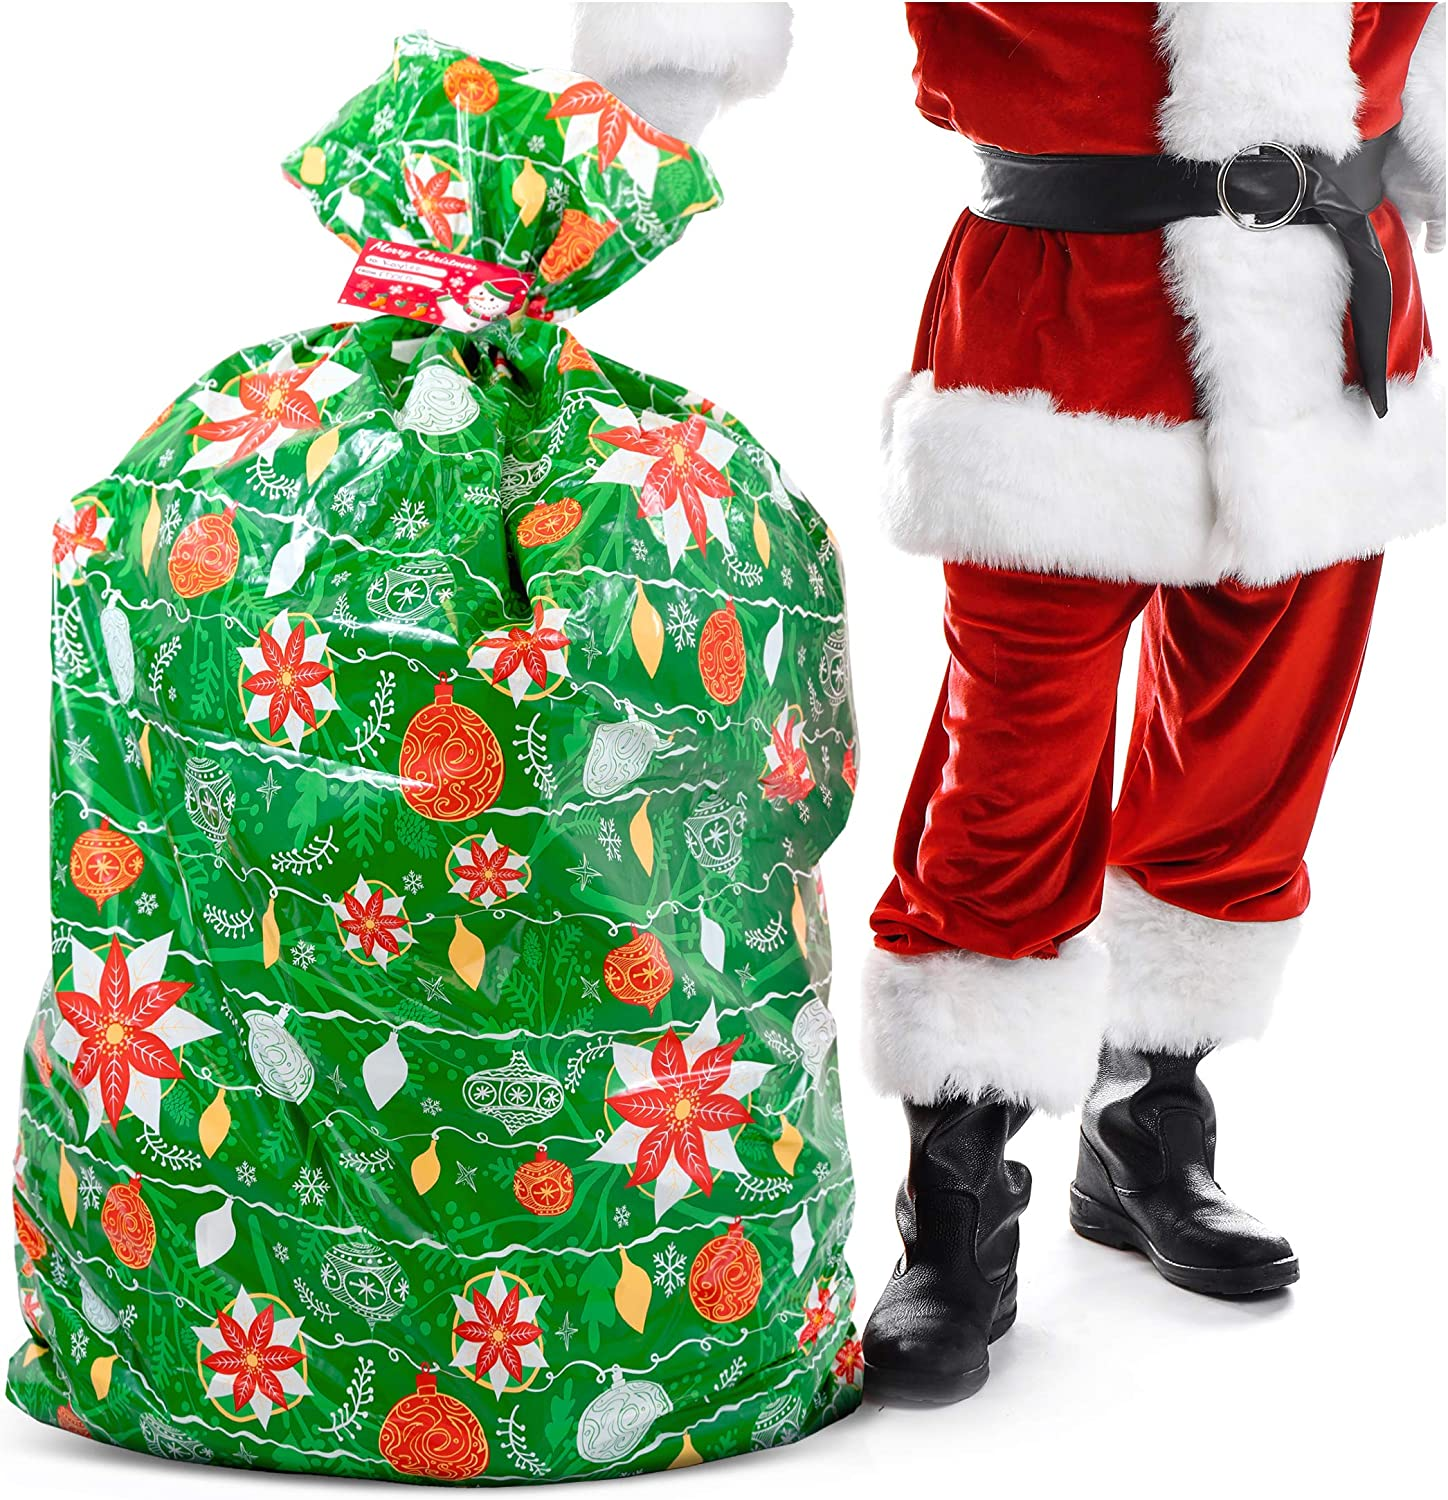 "Christmas Extra Large Gift Bag – Xmas Present Wrapping 56""x36"" Jumbo Large Christmas - Gift Bag Plastic Giant Gift Bags for Huge Gifts - Heavy Duty Big Gift Sack Set with Tag & String Tie"